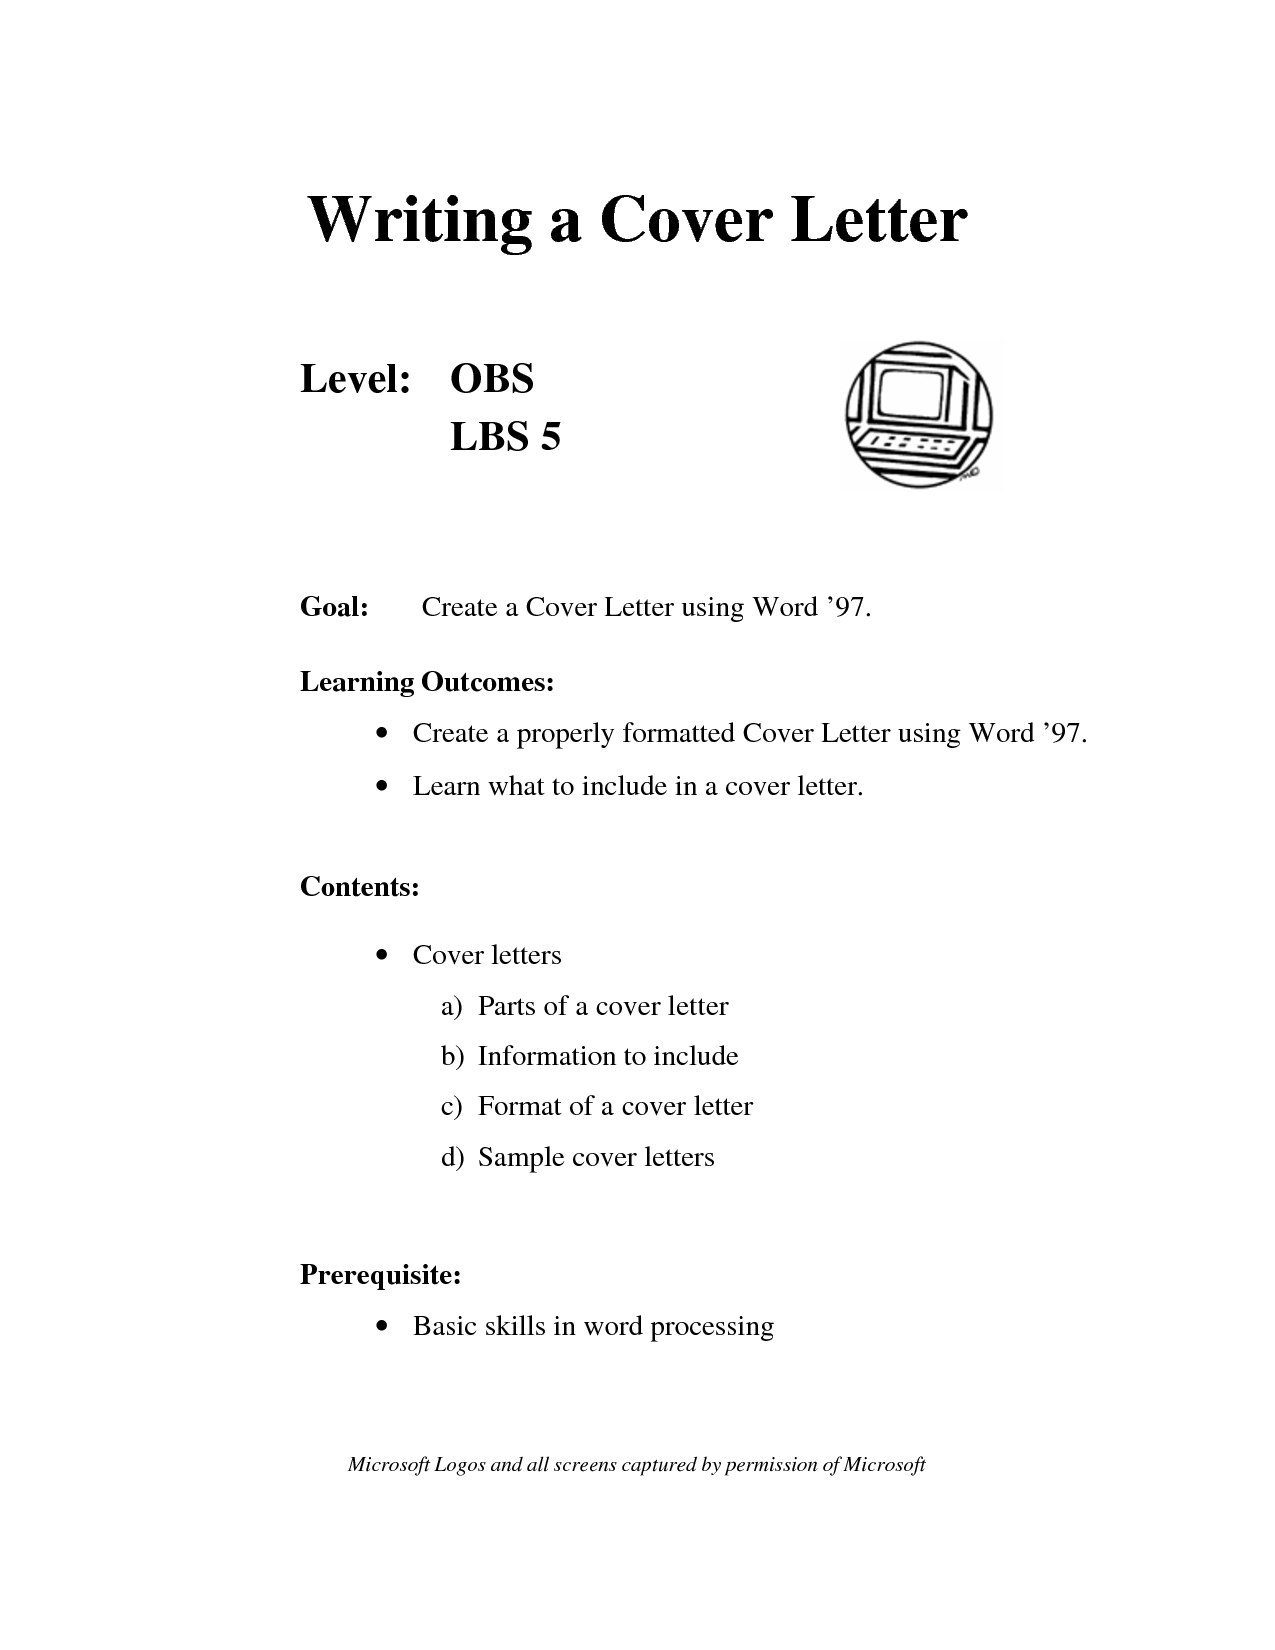 Marvelous Example Of How A Cover Letter Should Look  Creating A Cover Letter For Resume